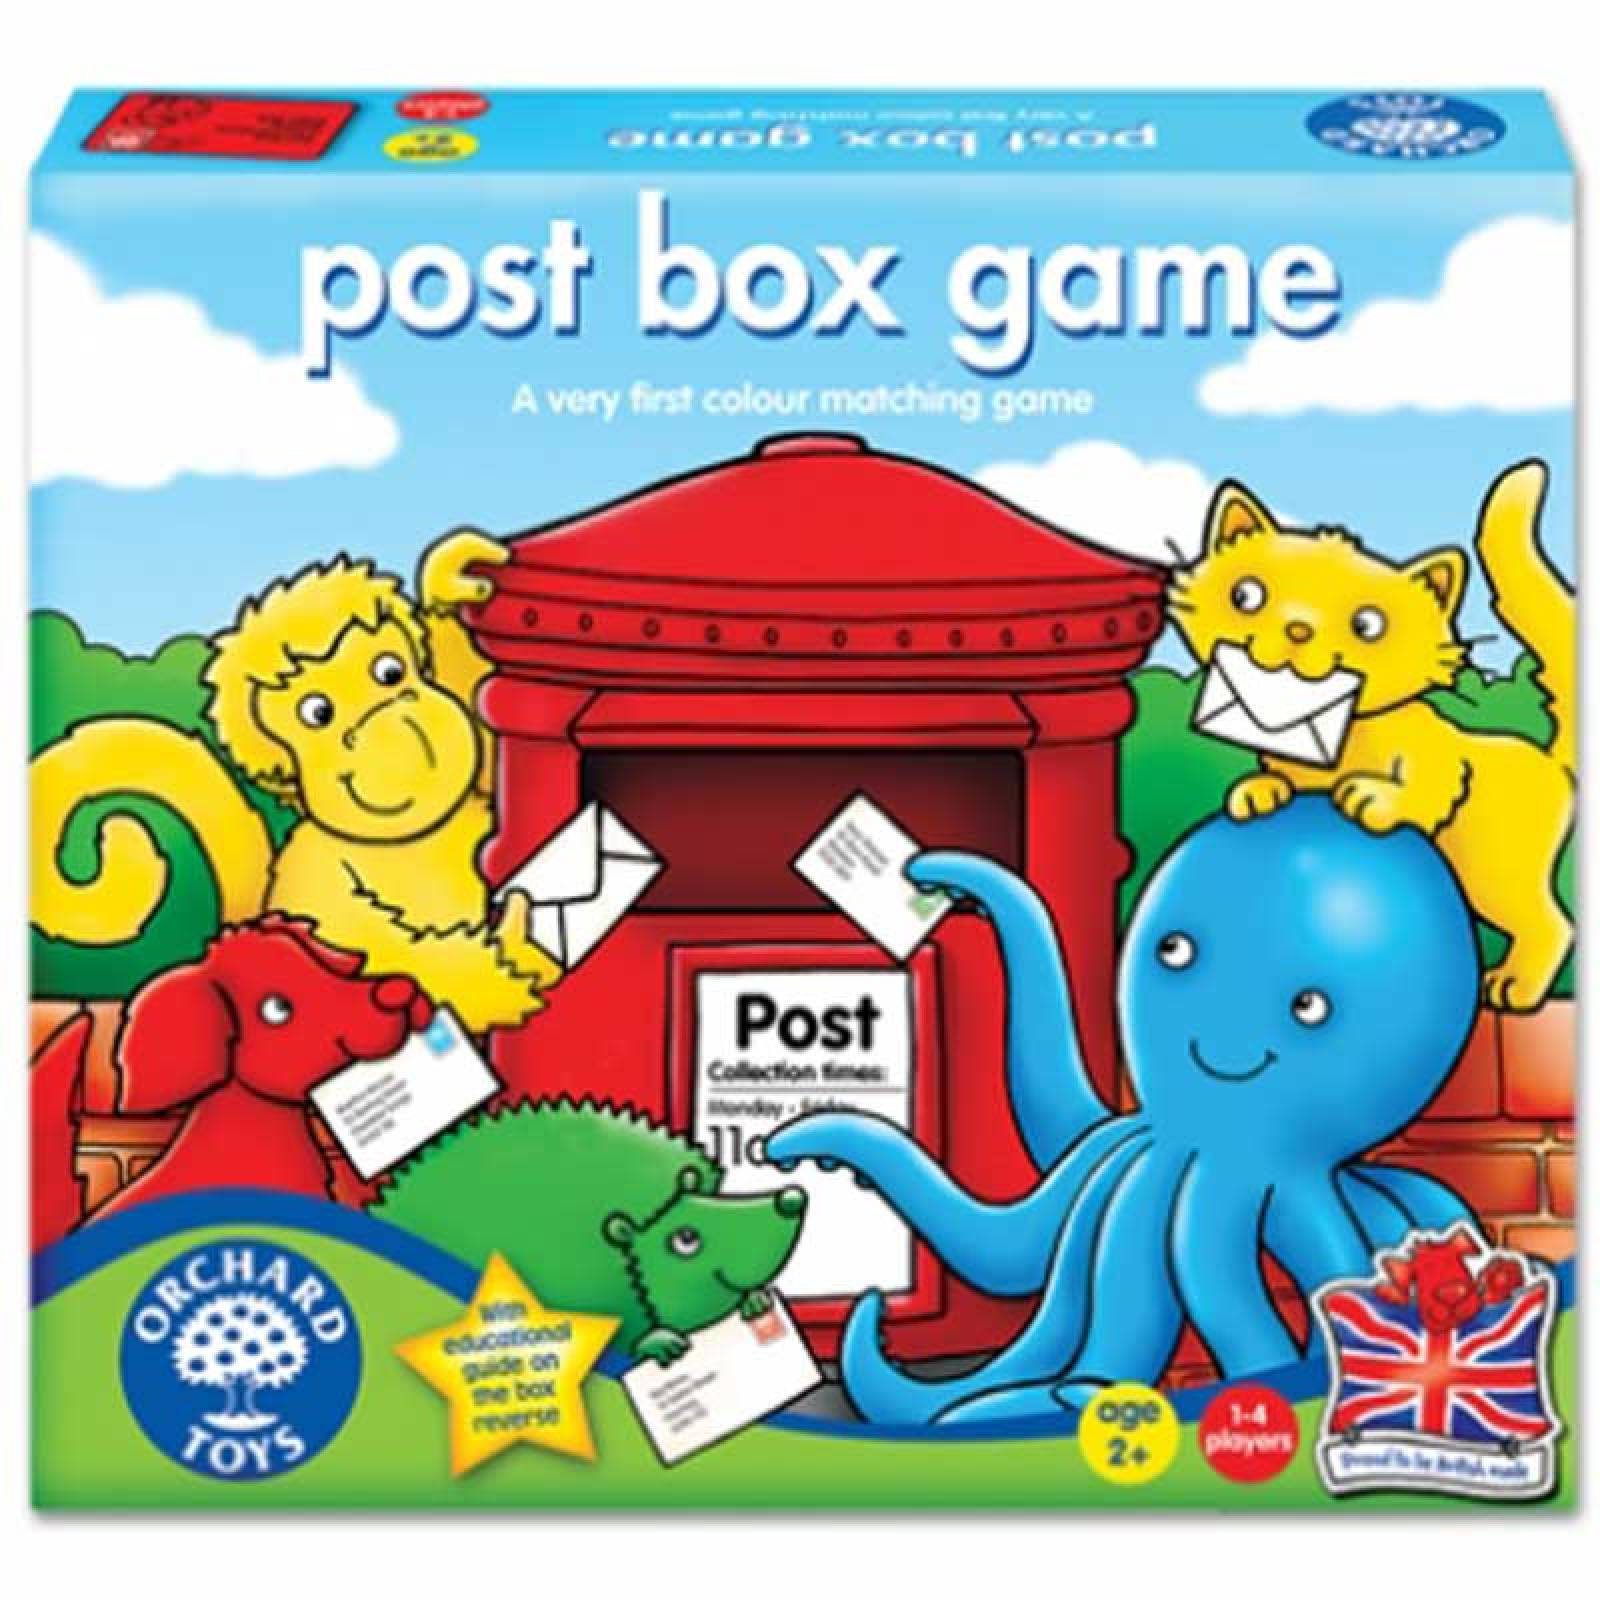 Post Box Game By Orchard 2+yrs